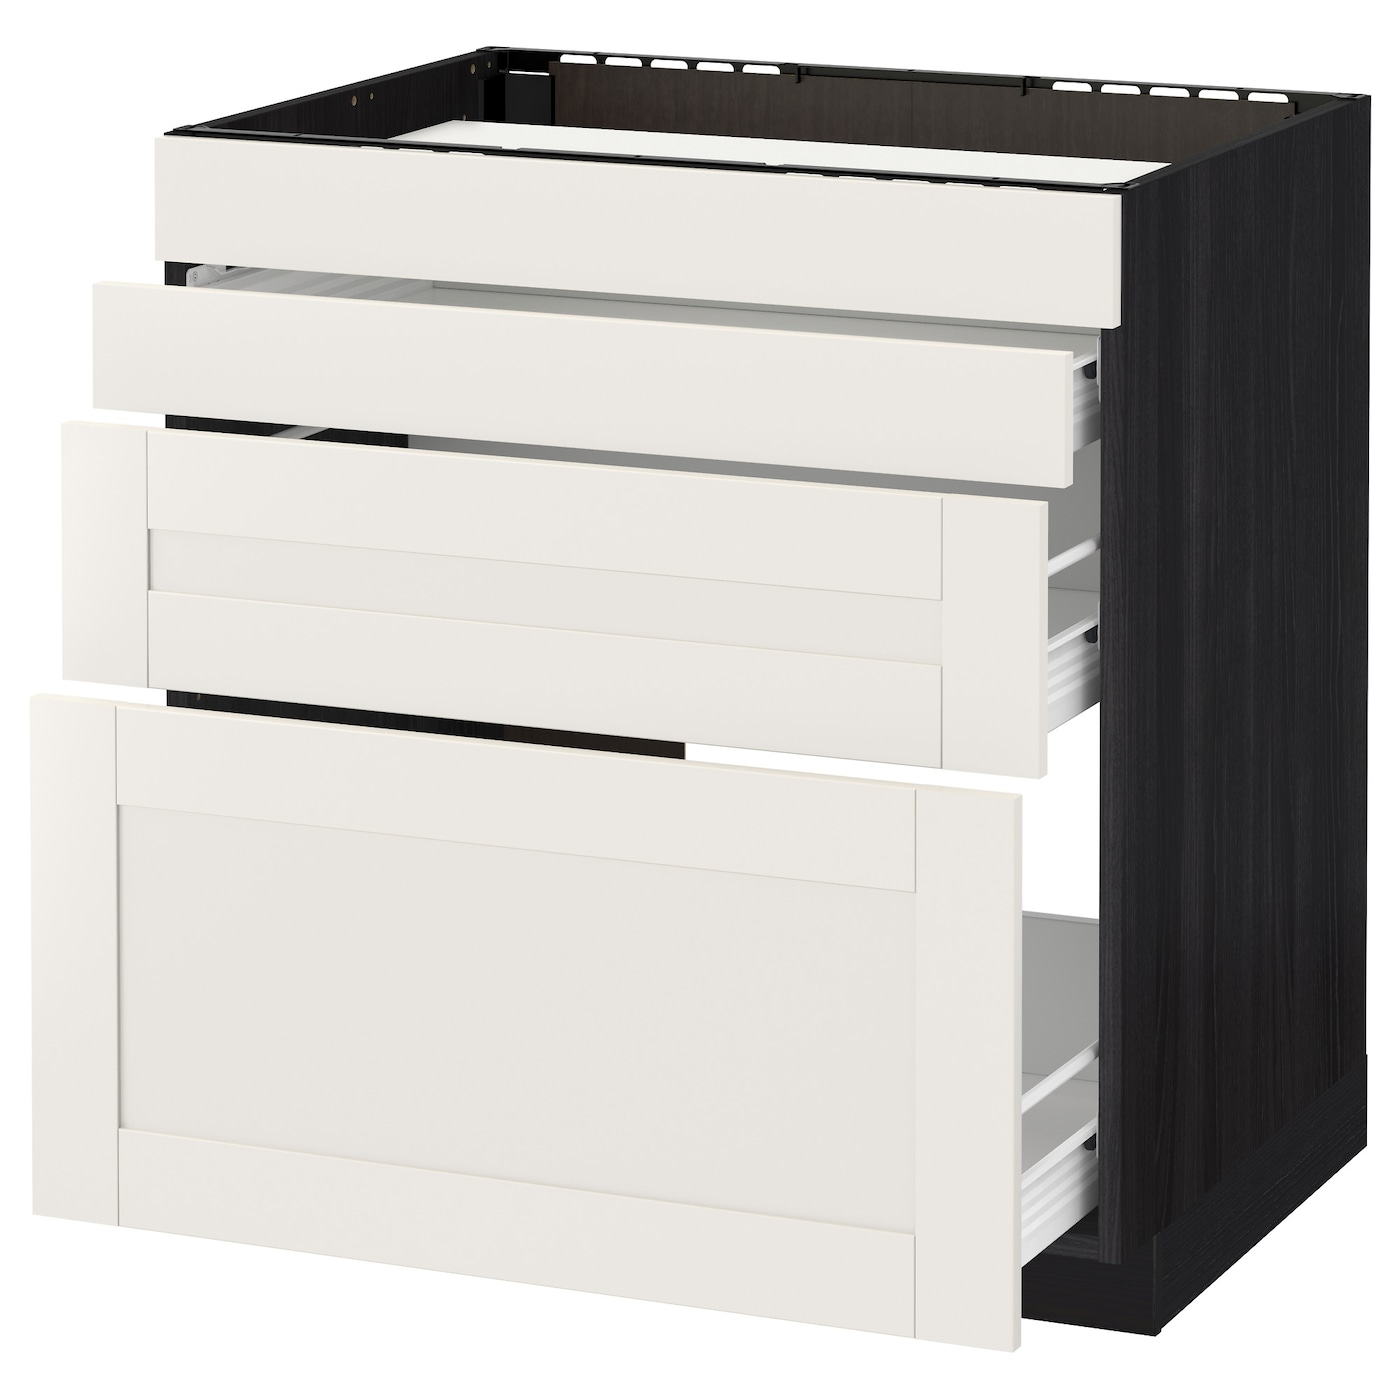 IKEA METOD/FÖRVARA base cab f hob/4 fronts/3 drawers Sturdy frame construction, 18 mm thick.